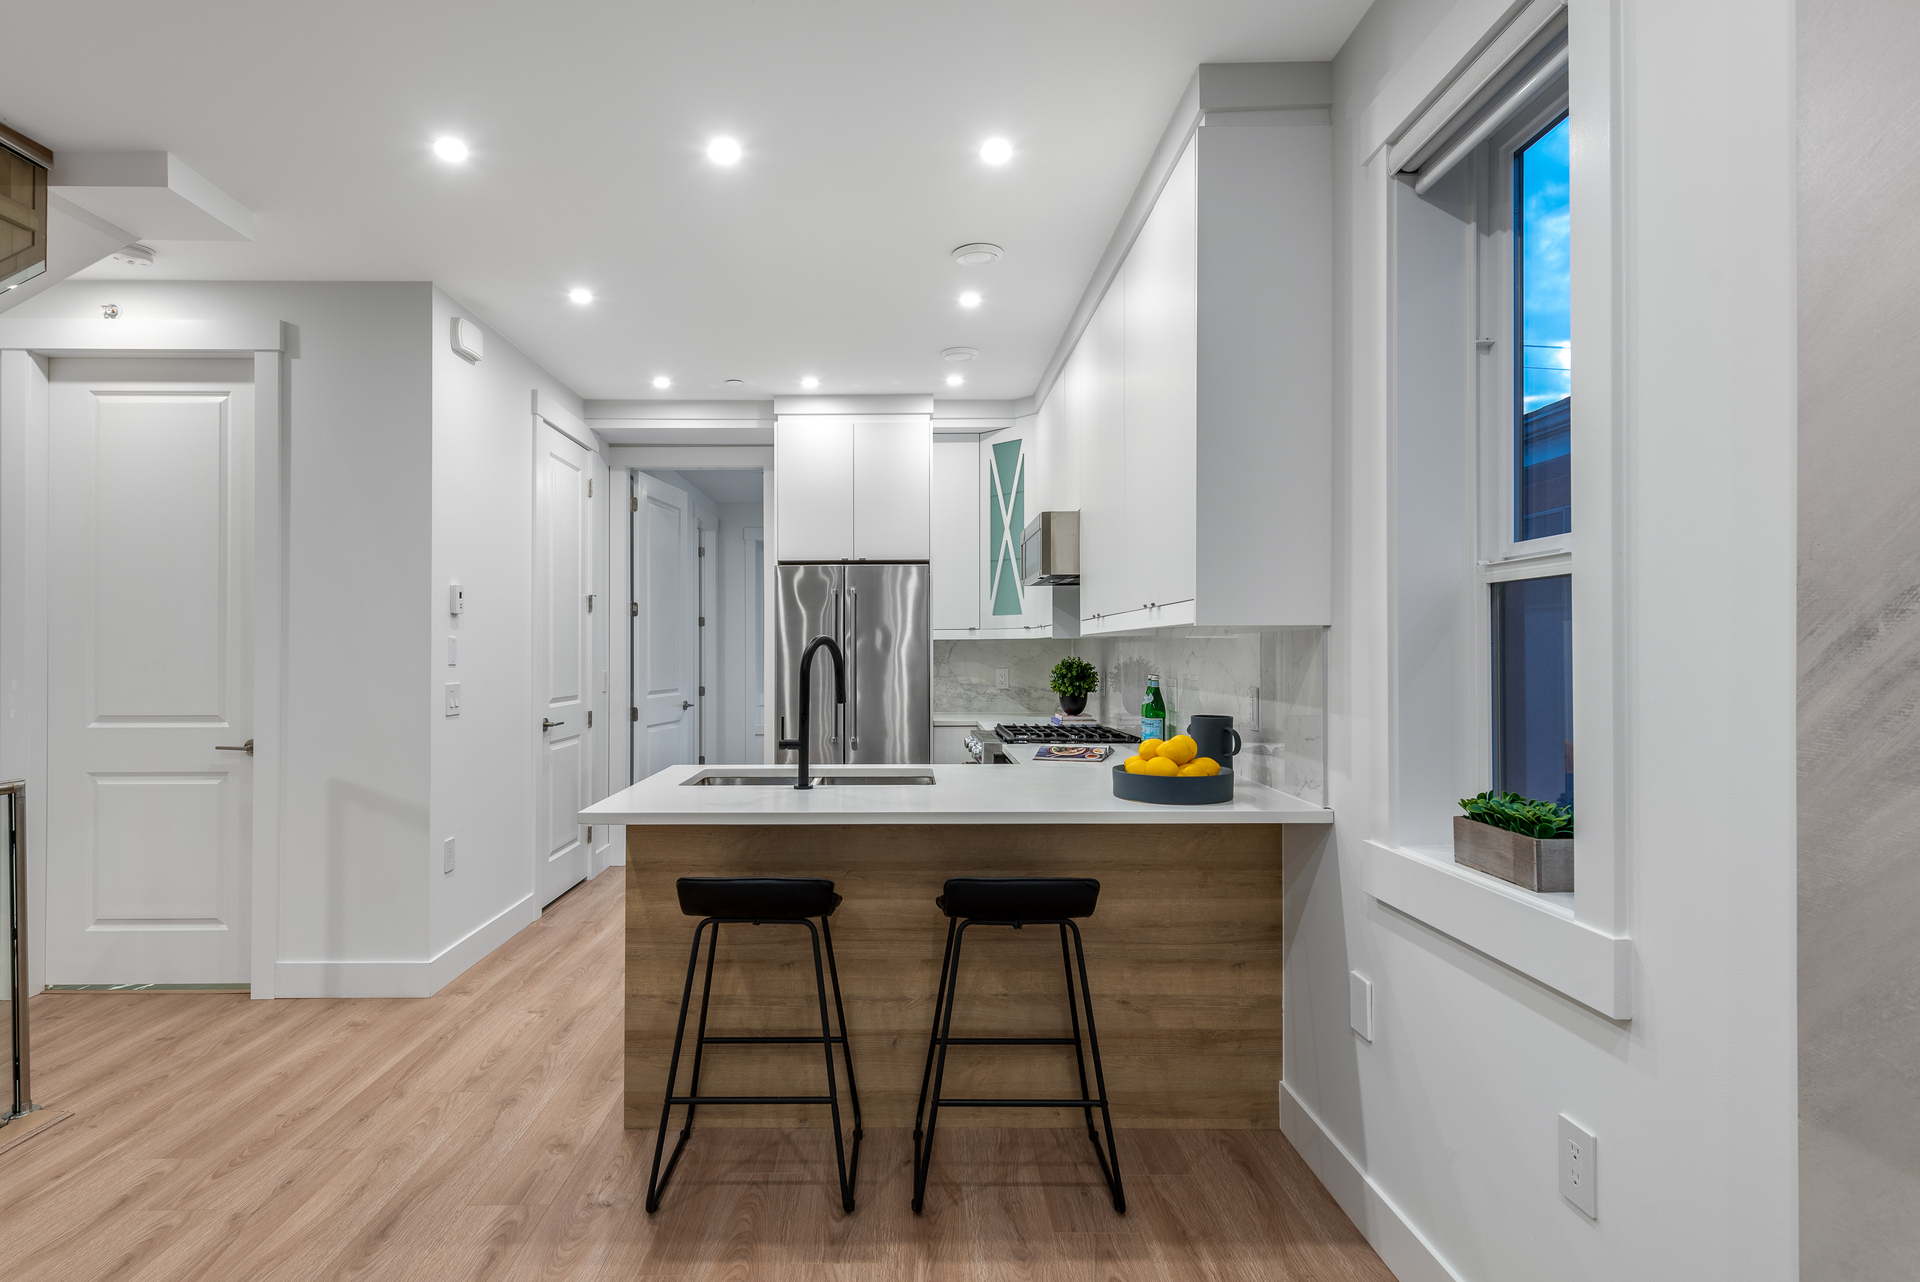 2061-e-36th-ave-vancouver-360hometours-11 at